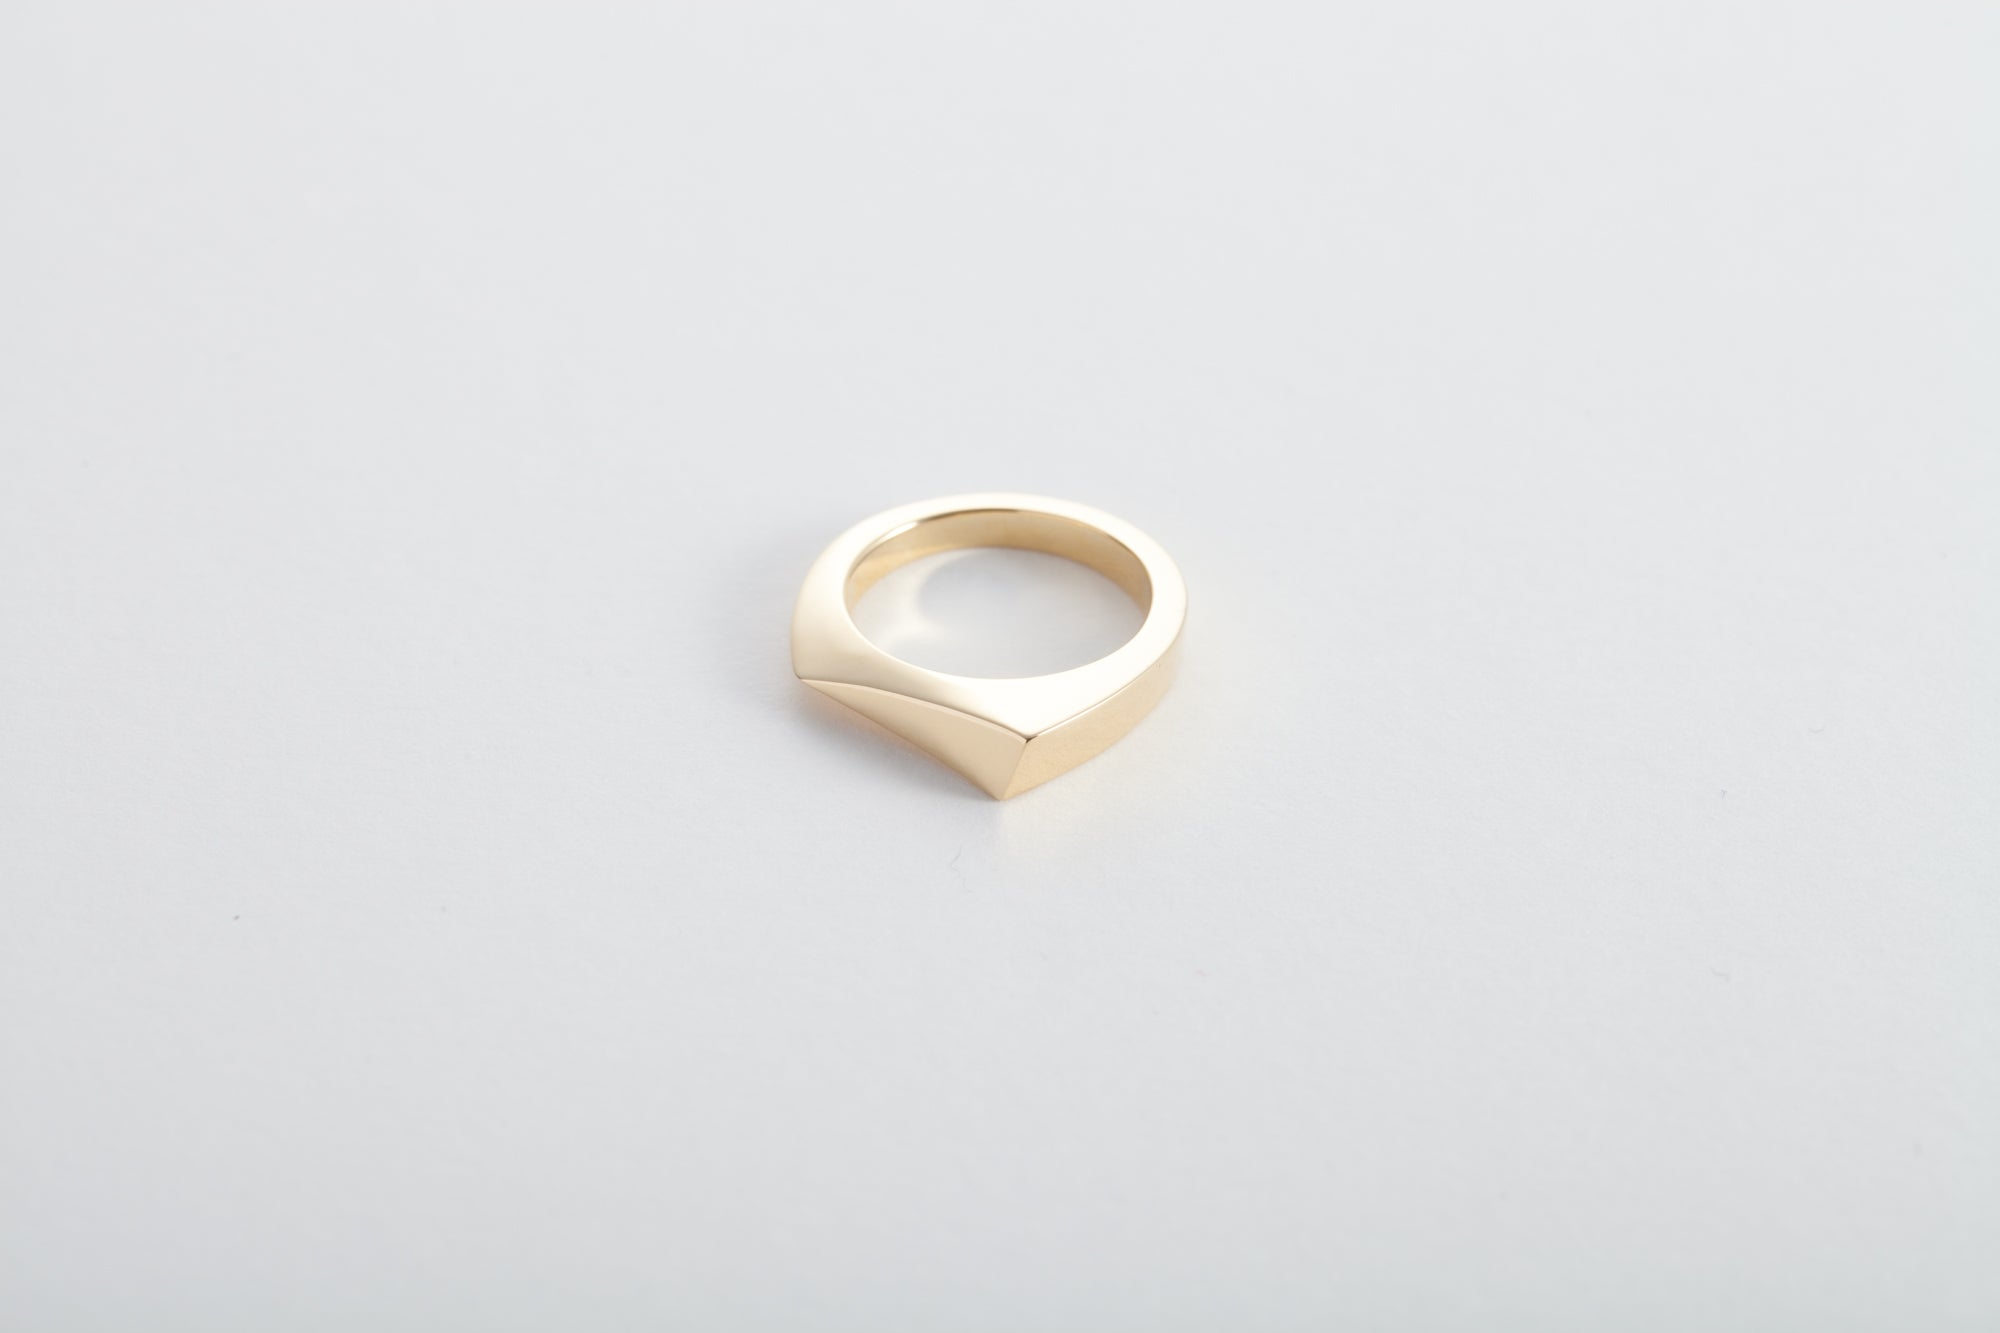 18k Gold Abstract Triangle Ring